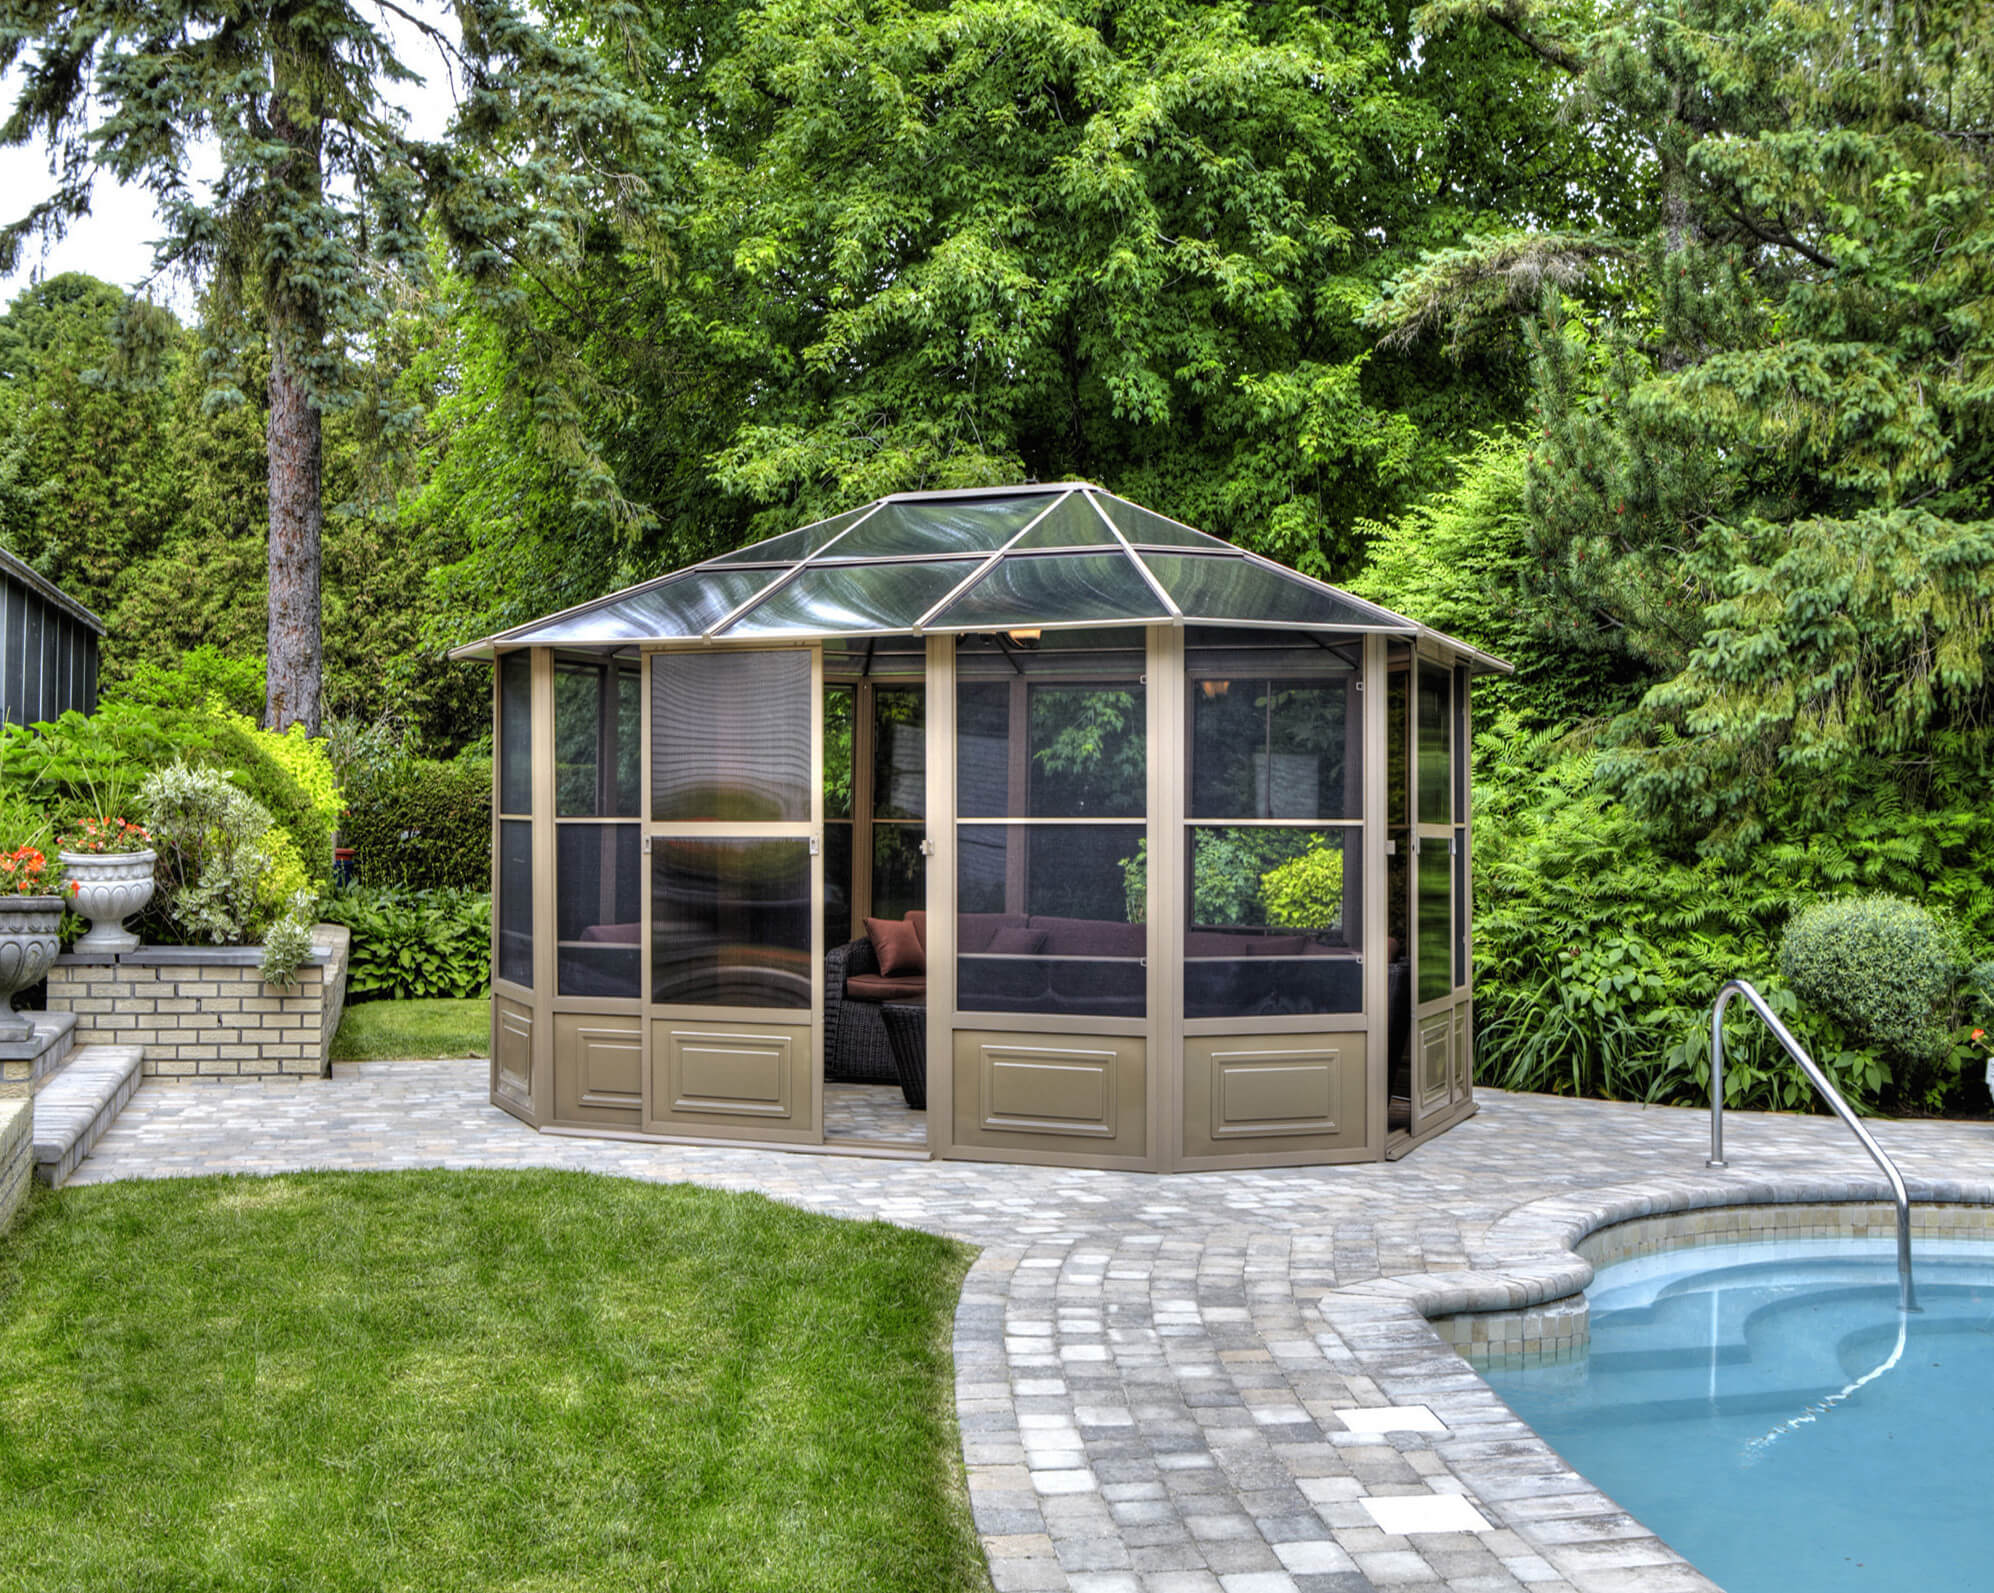 A glass roof makes an enclosed gazebo the perfect unattached solarium for a backyard. Here, it's next to a lovely pool.